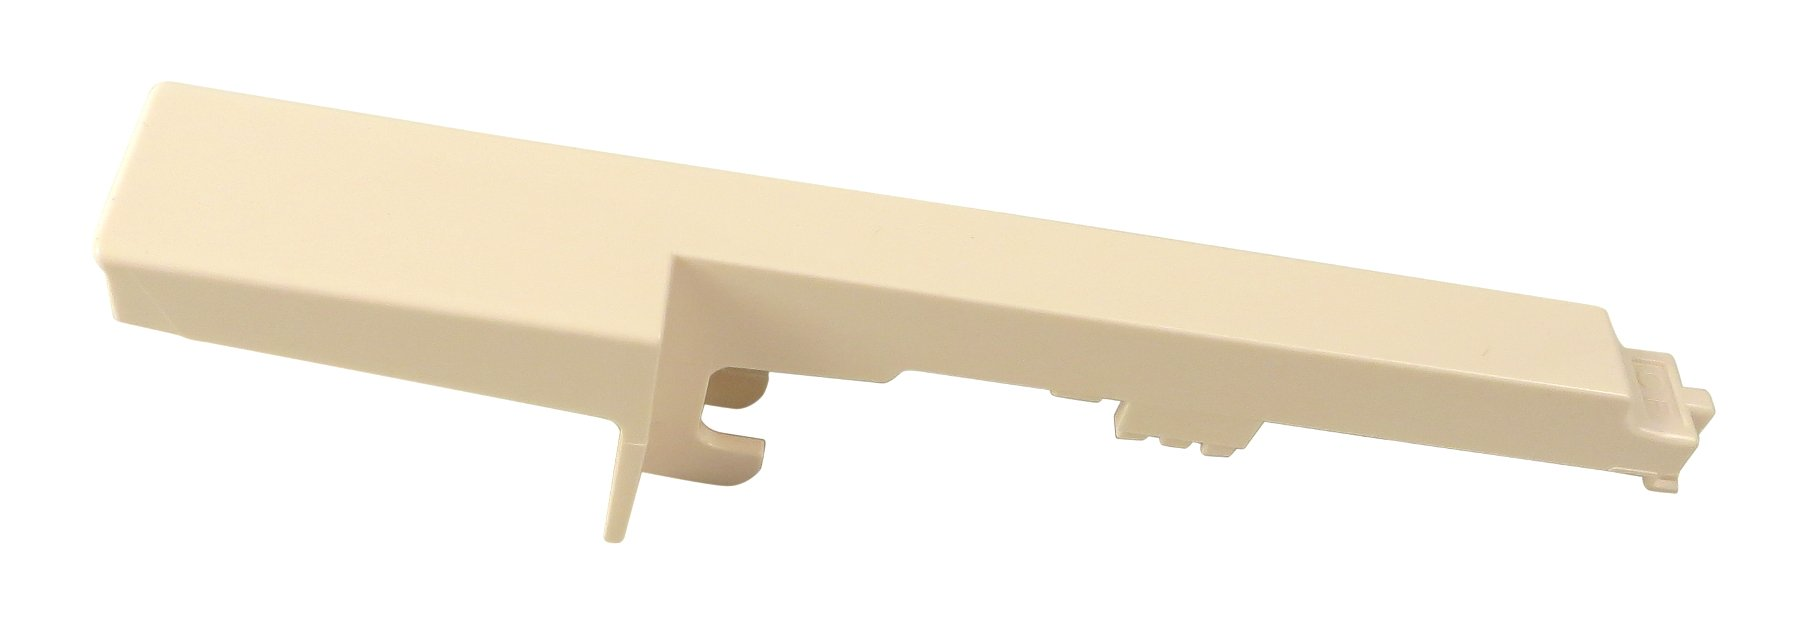 White C/F Key for MO6 and SY35